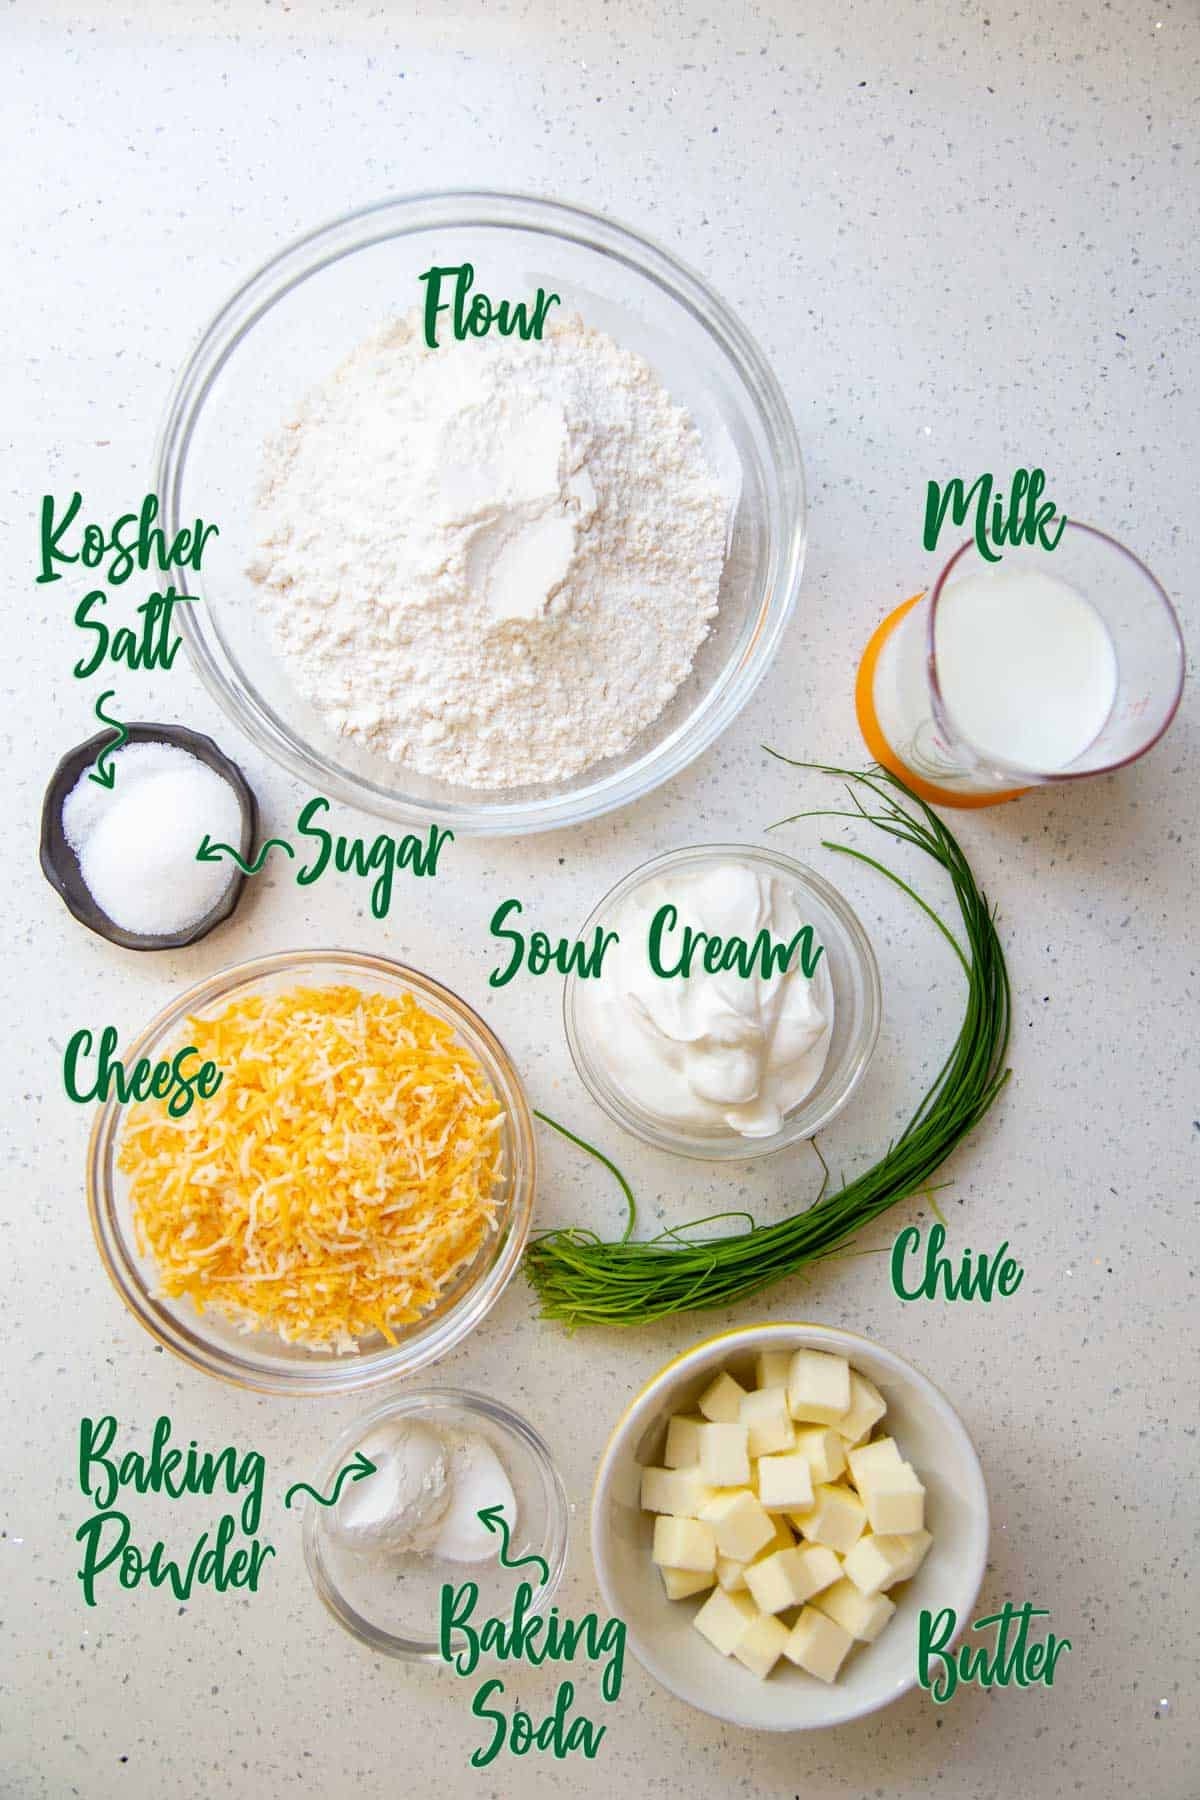 Ingredients for cheese biscuits on a white countertop.